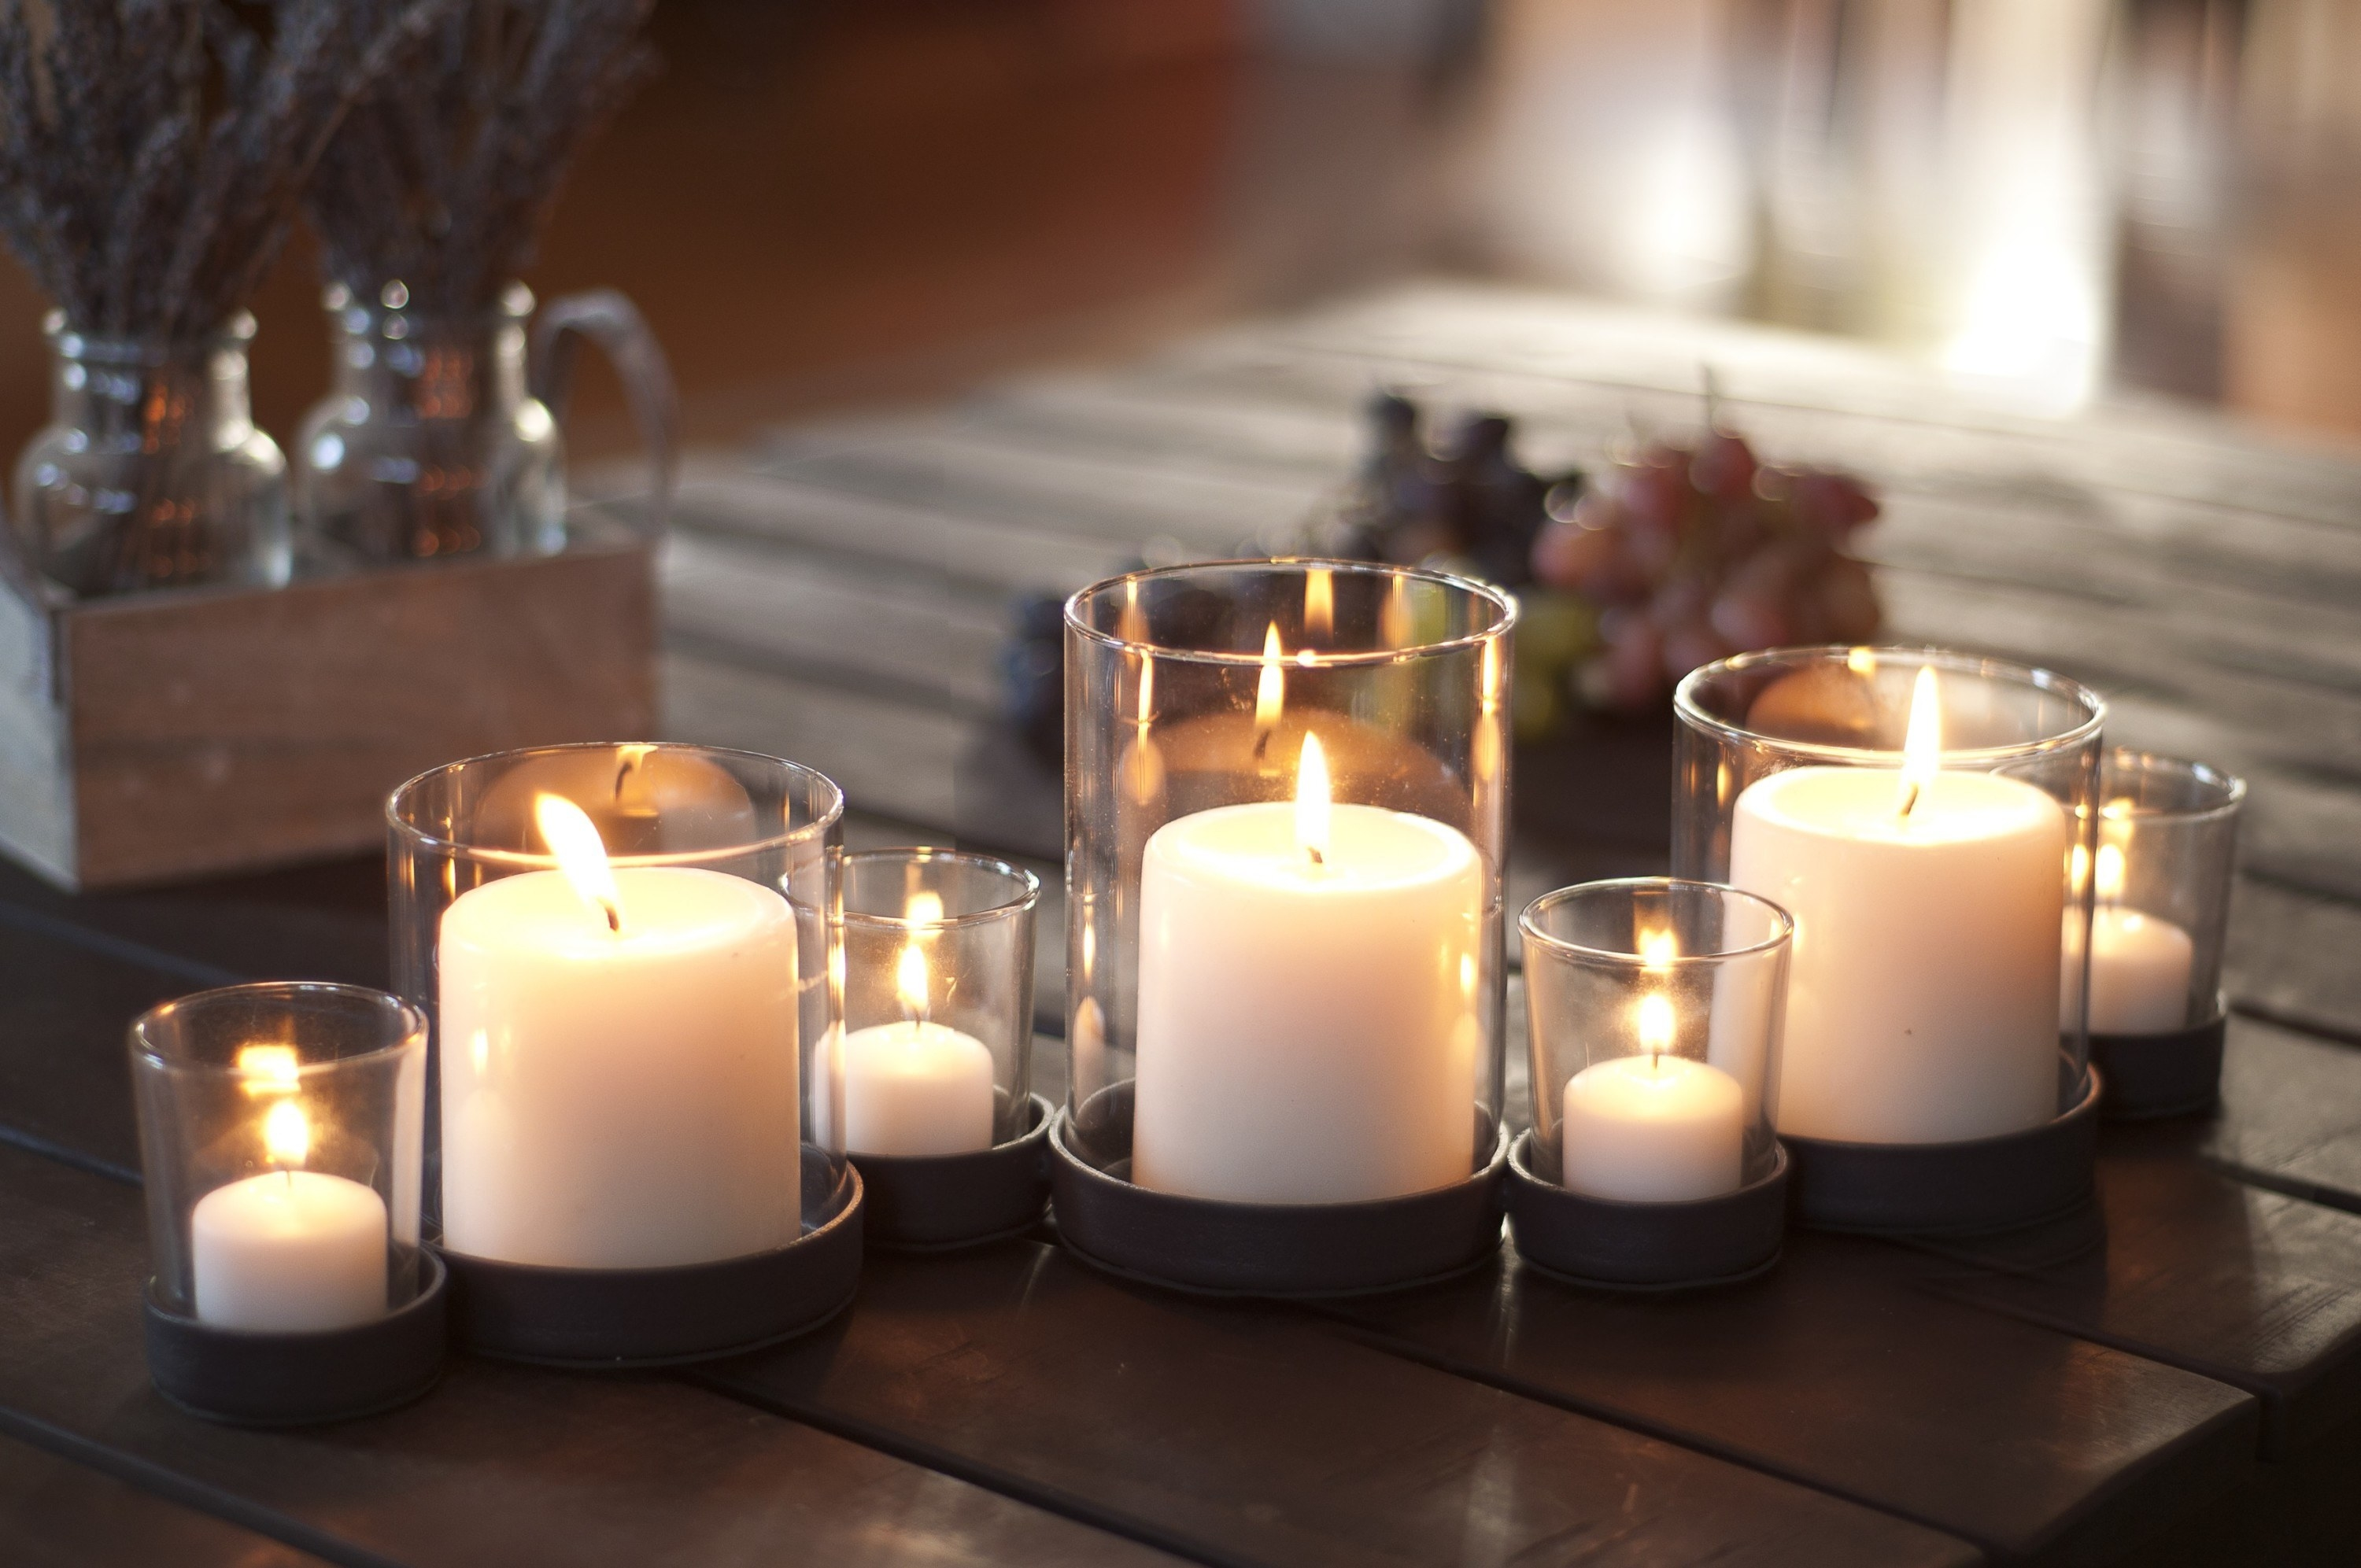 Silver candle holders in a home